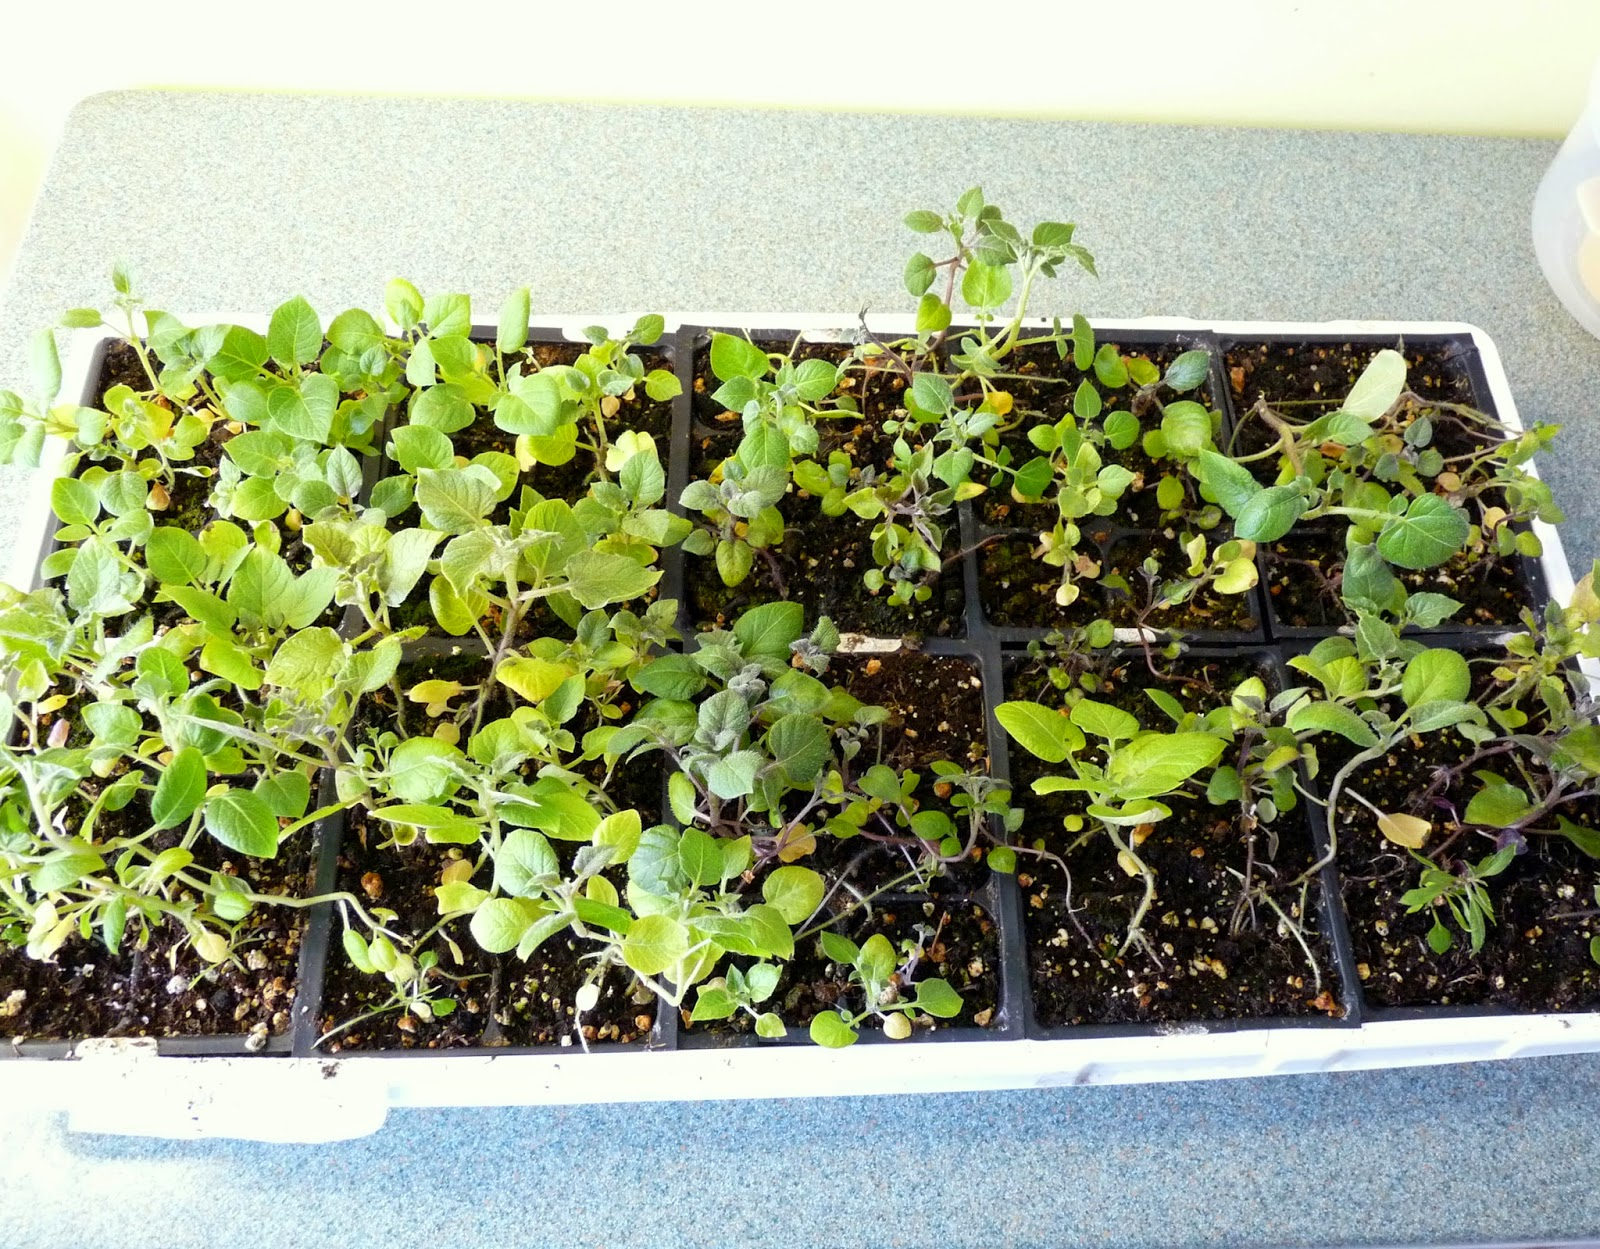 Potato plants grown from seeds